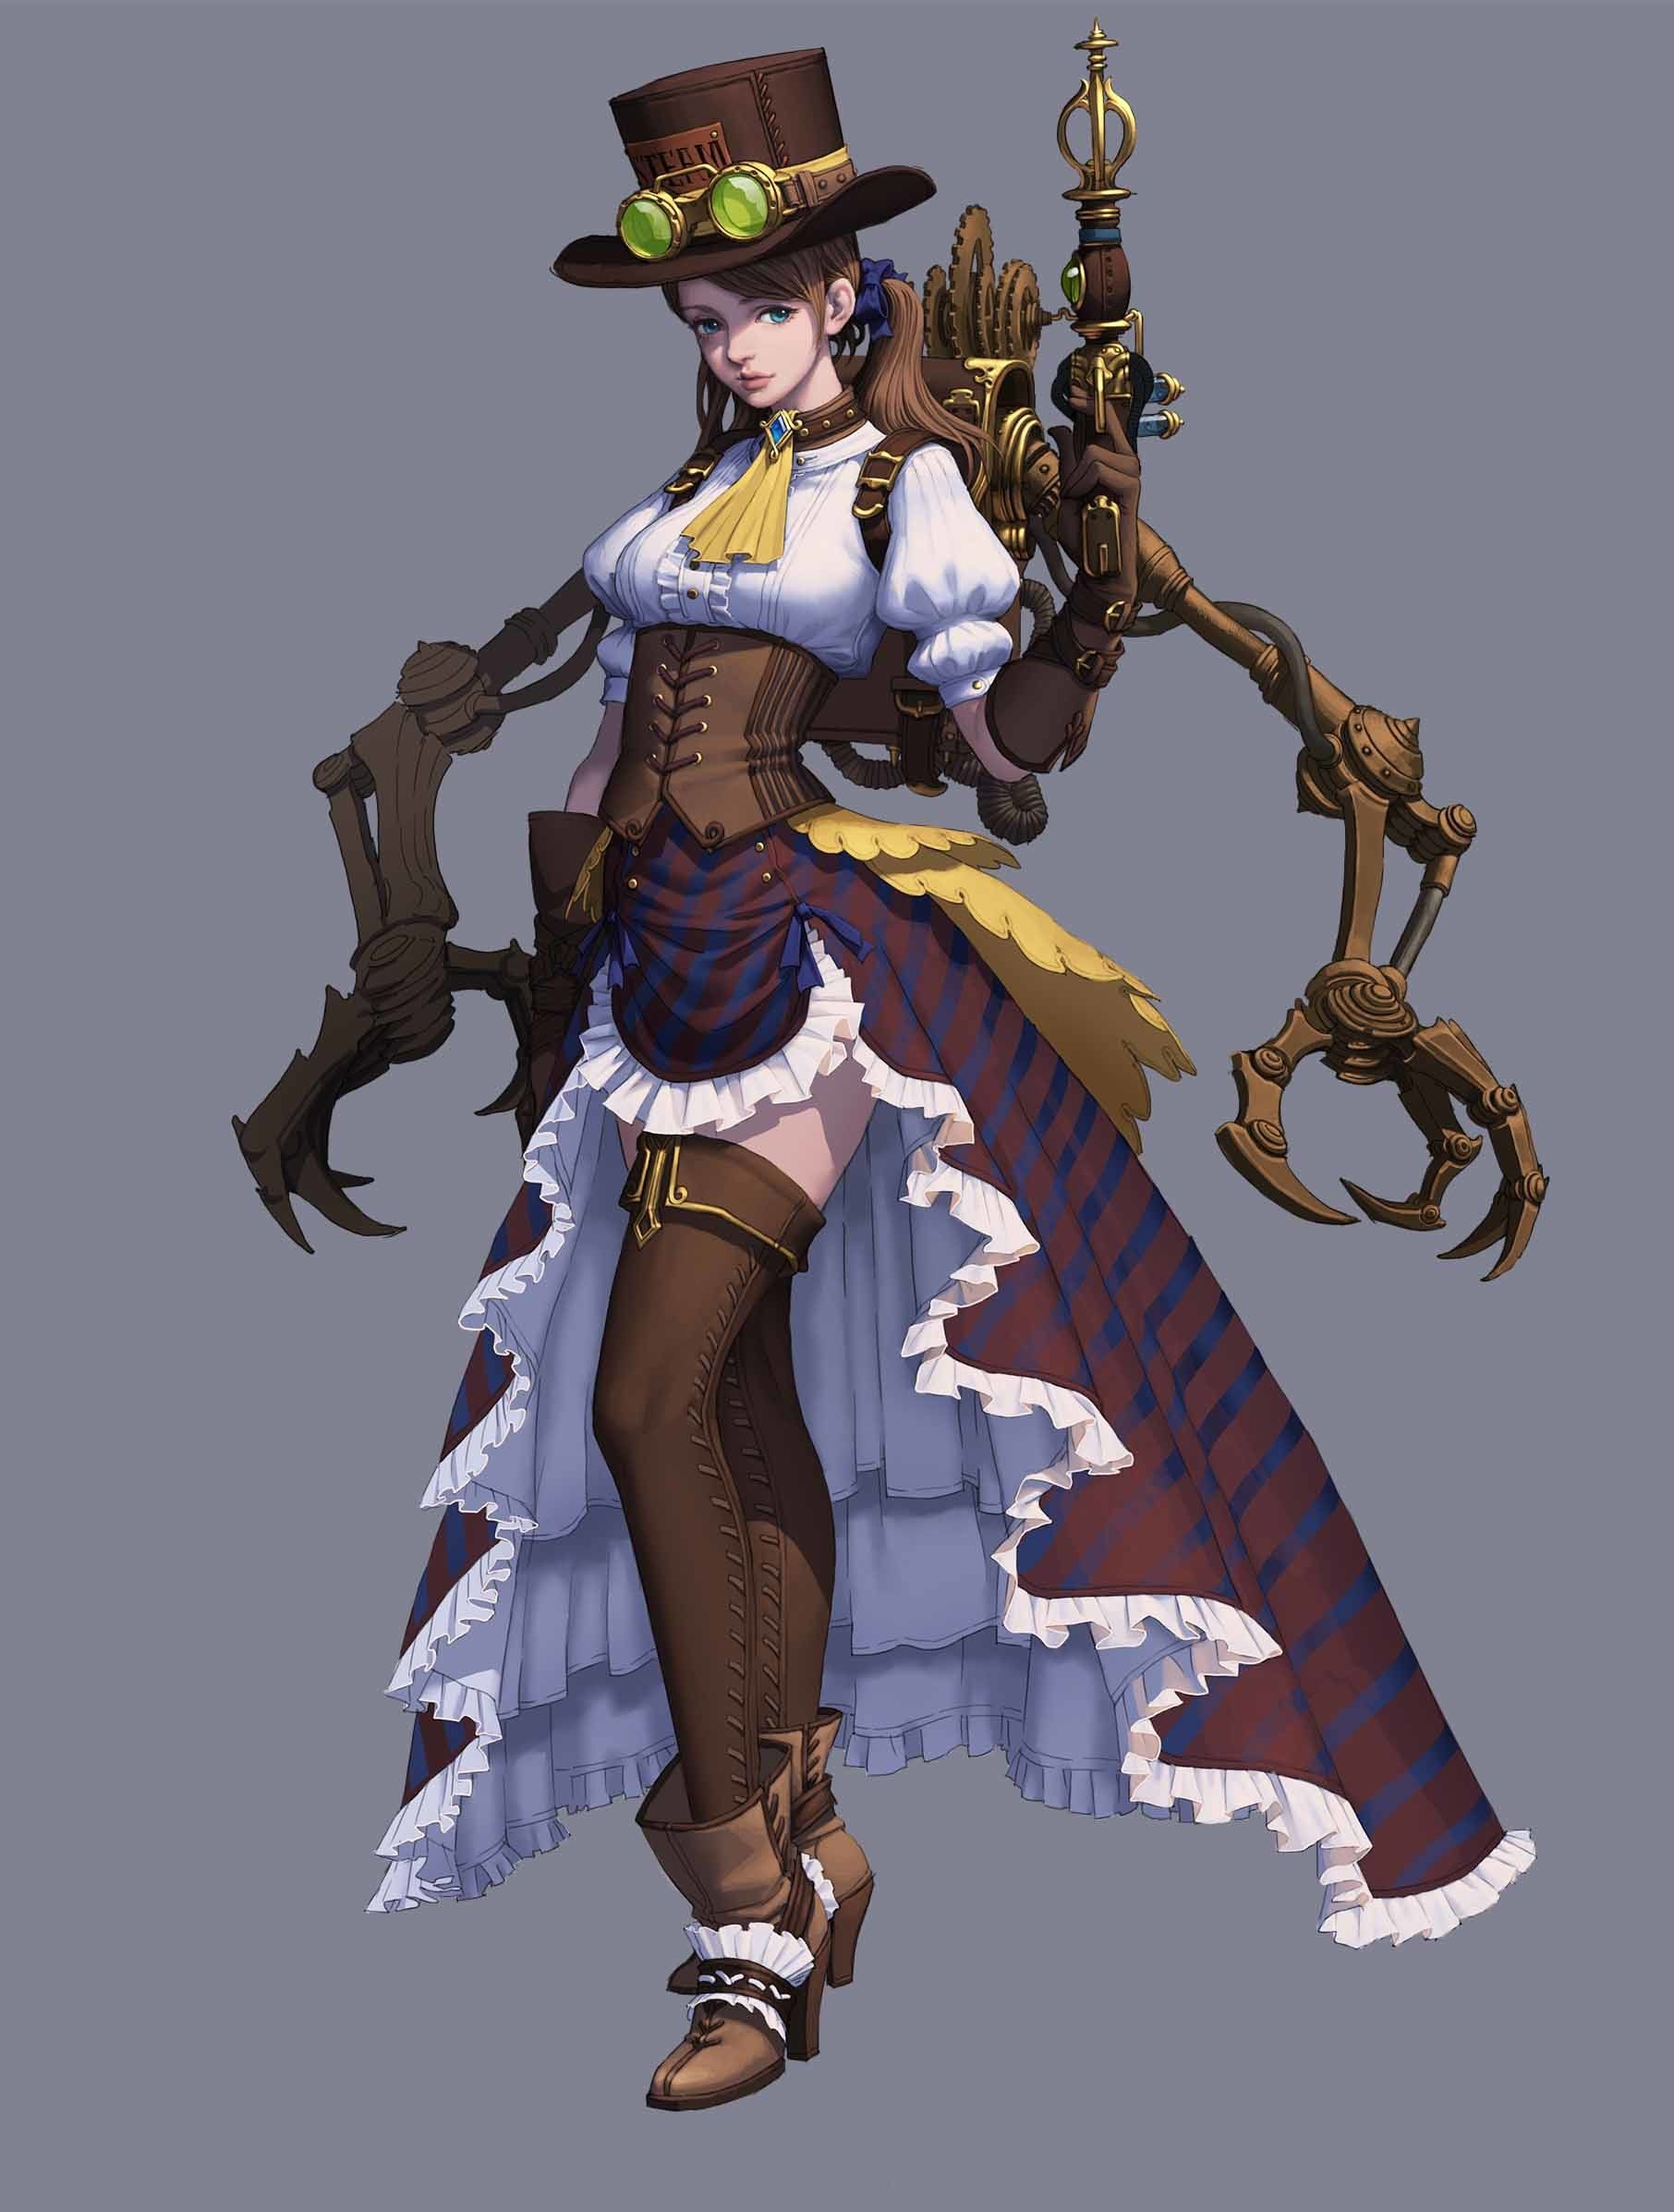 41+ Steampunk character ideas in 2021